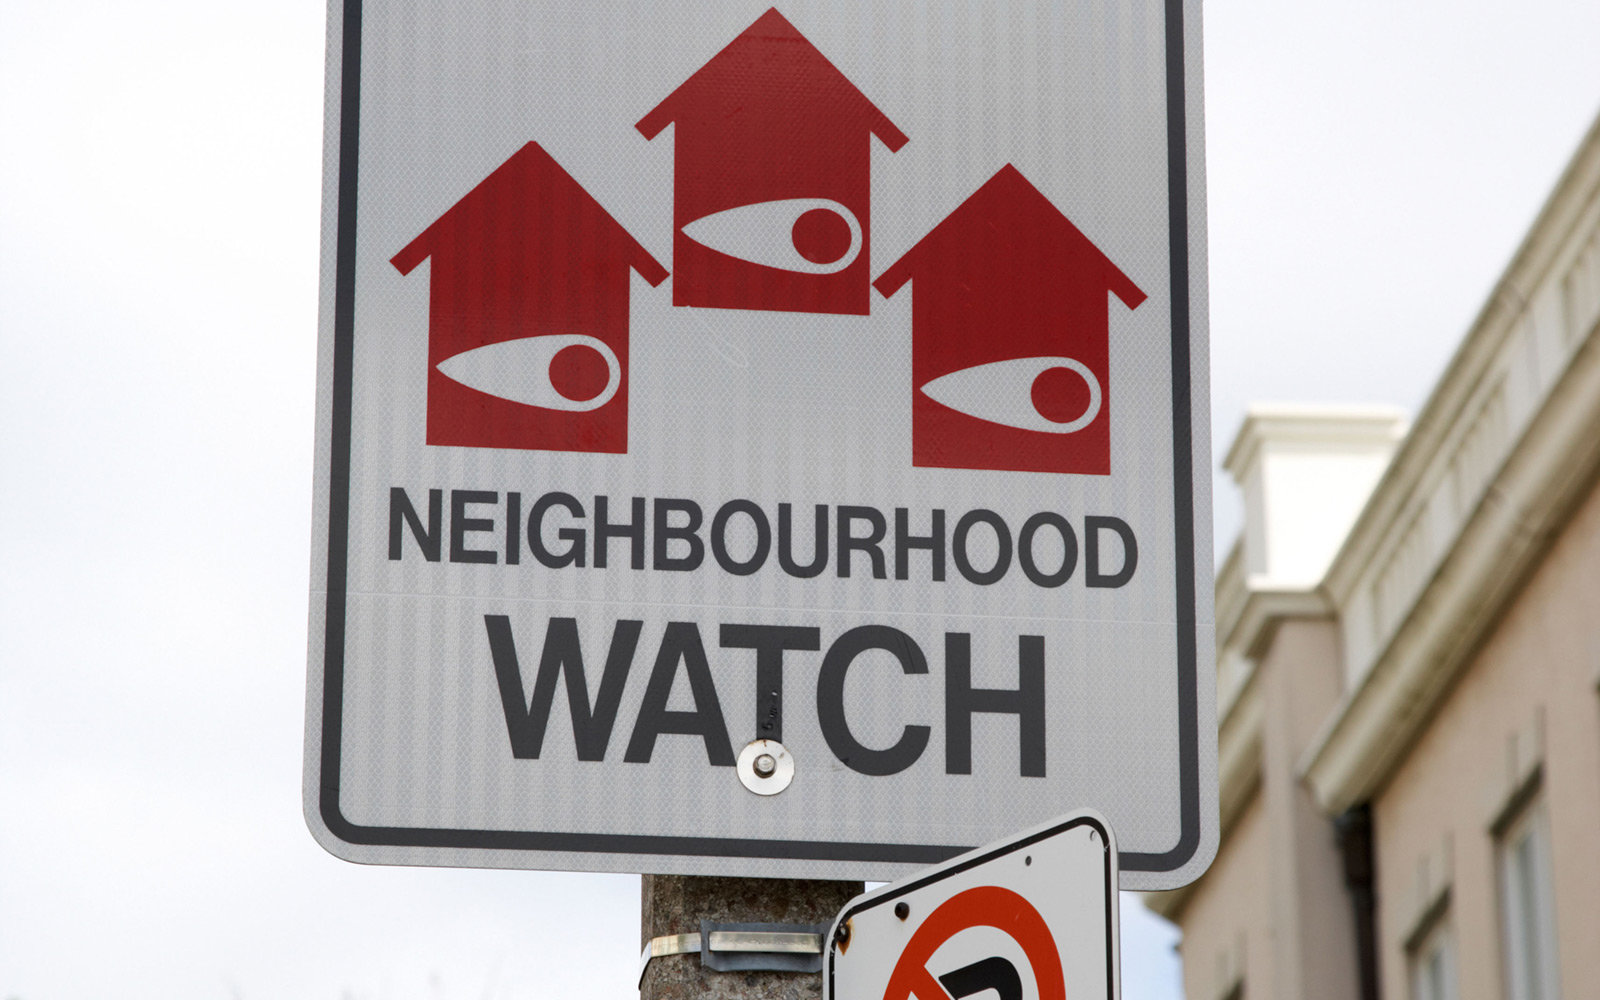 Neighborhood Watch Signs, Toronto, Canada